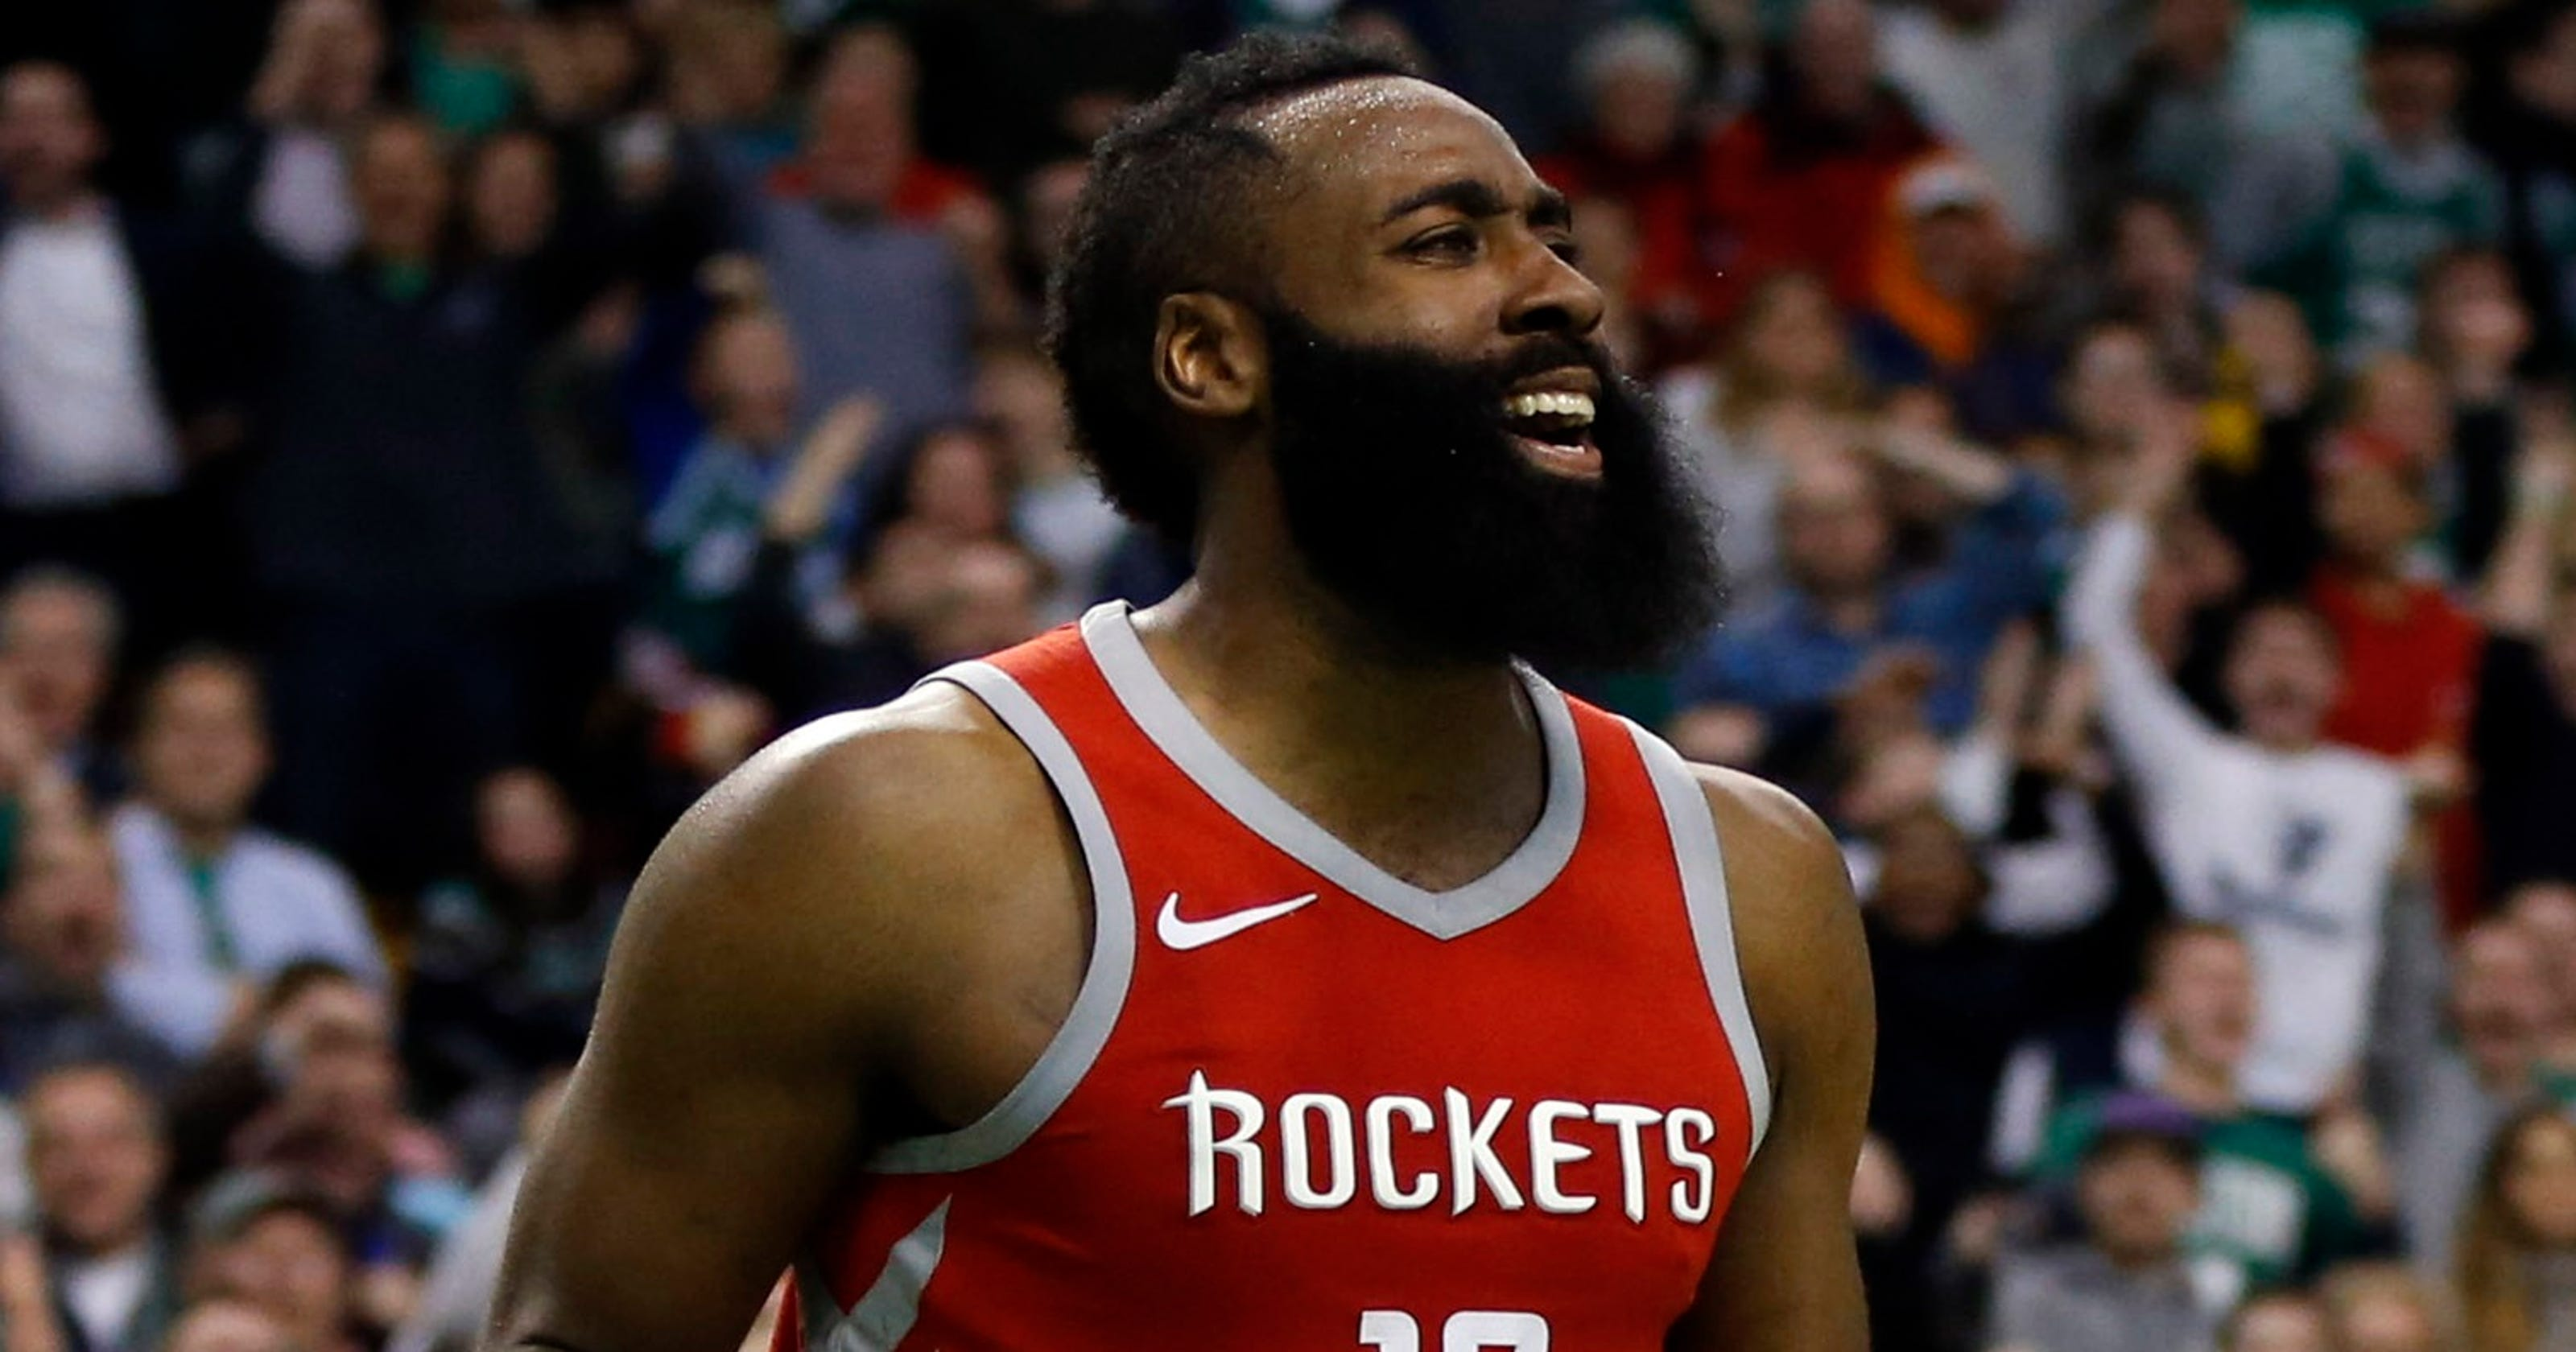 e4c3cc6ec40b Rockets star James Harden out at least two weeks with hamstring injury